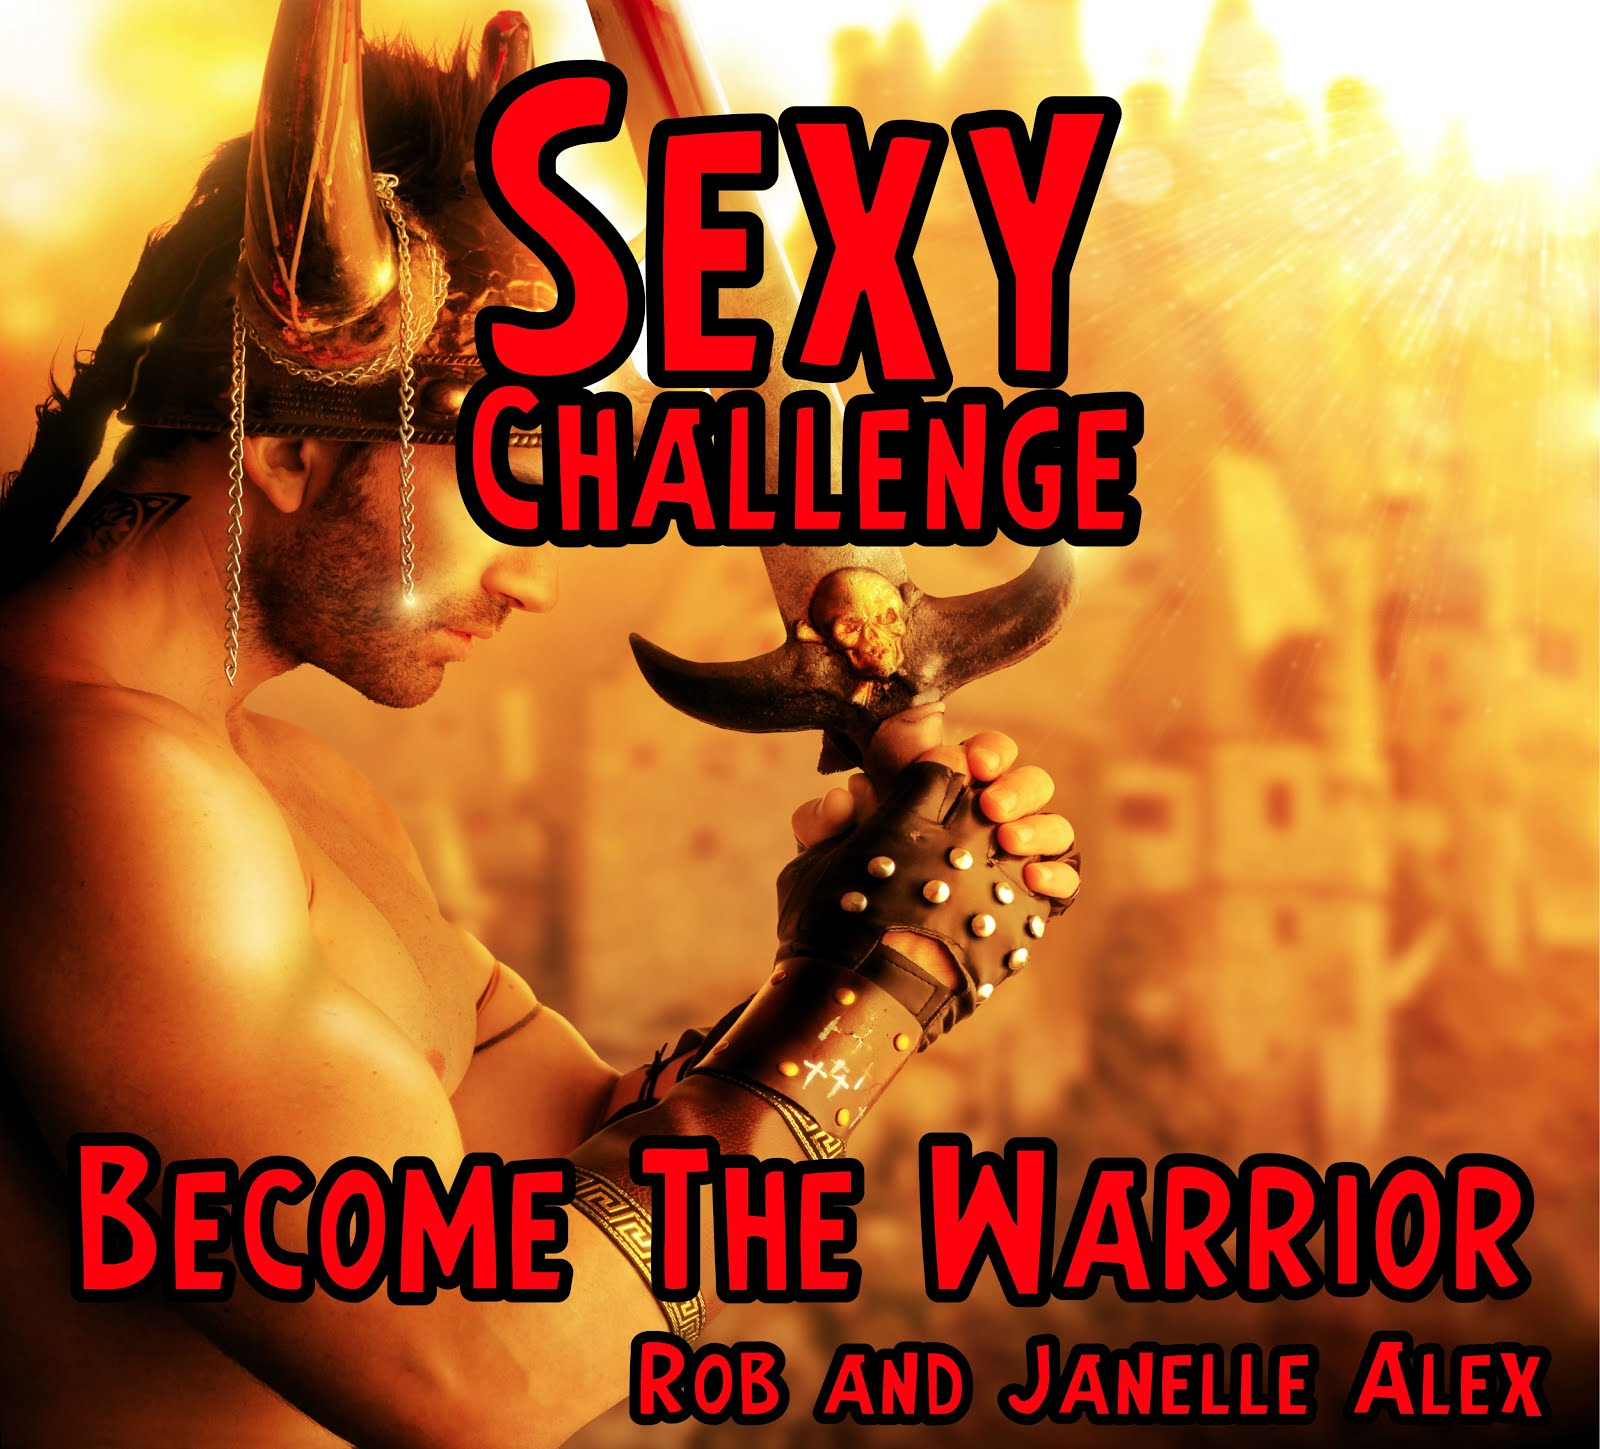 FREE Become The Warrior / Sexy Challenge